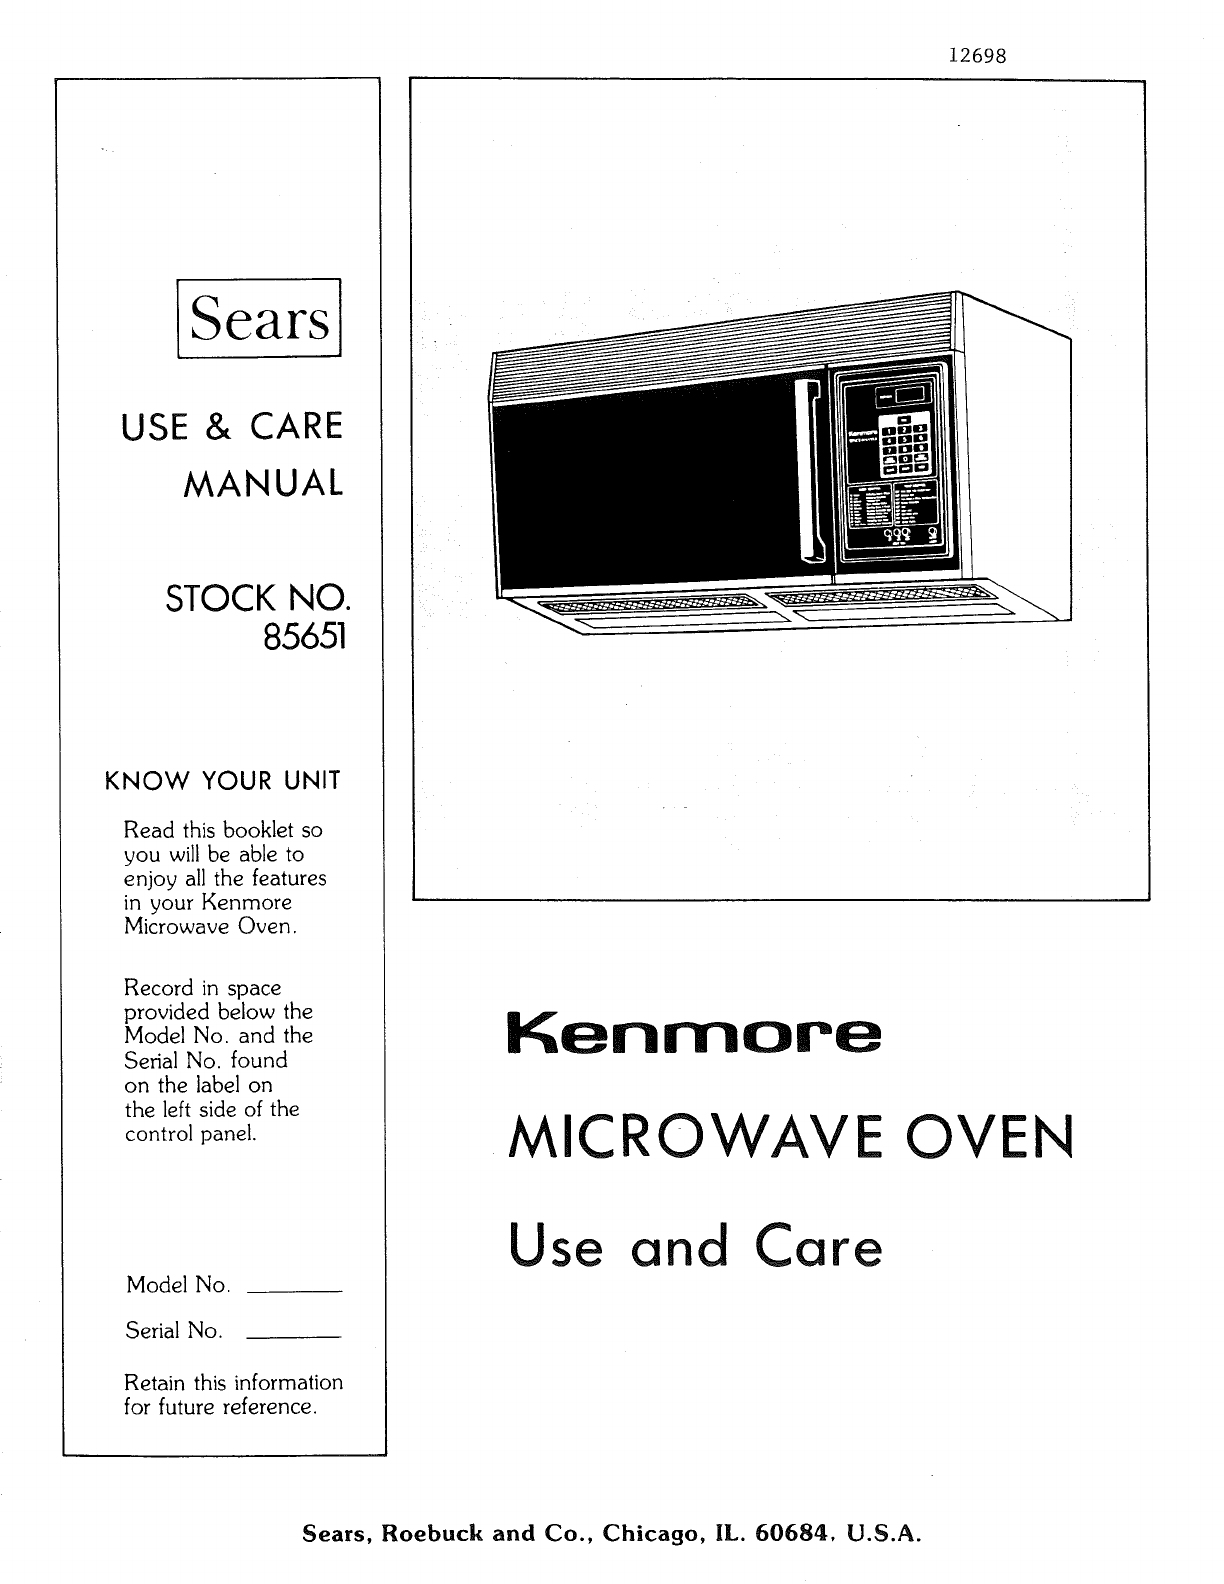 manual microwave oven manuals